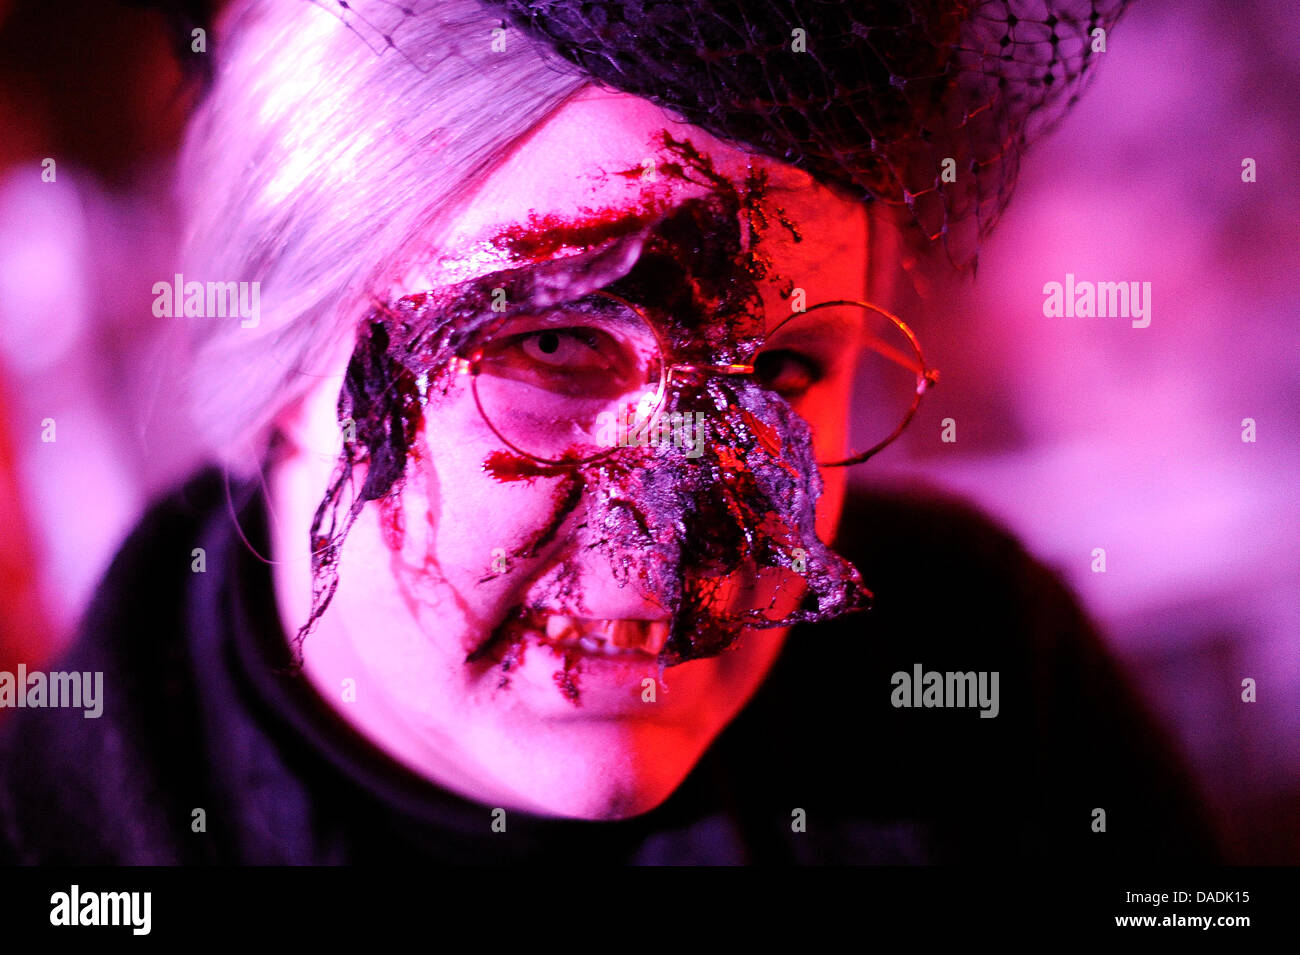 An actress costumed as monster scares visitors of the MoviePark in Bottrop, Germany, 27 October 2011. With Christmas - Stock Image